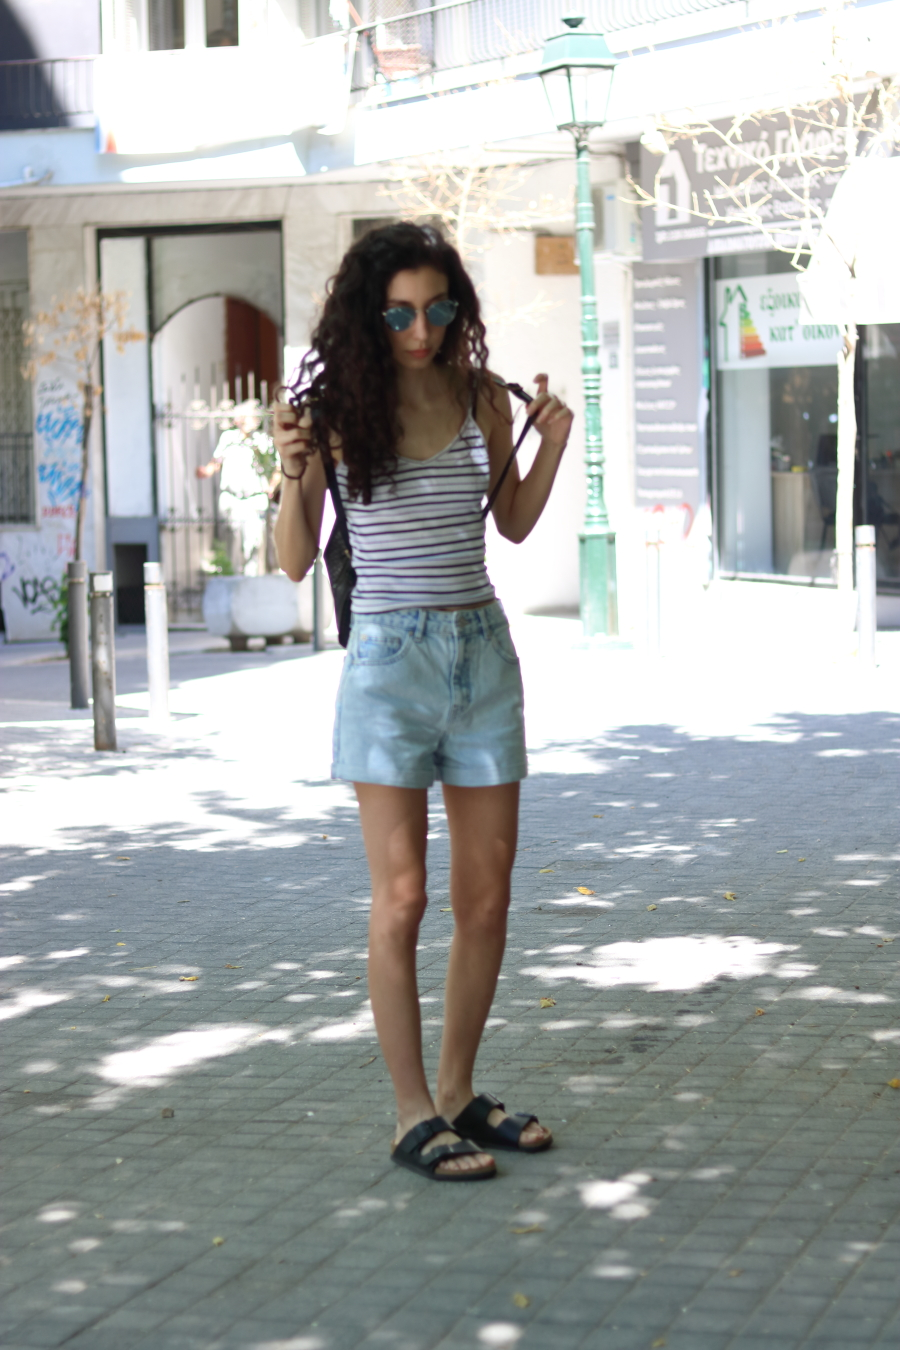 summer travelling outfit-simple-minimal-casual-fashion-style-denim shorts-cami top-birkenstocks